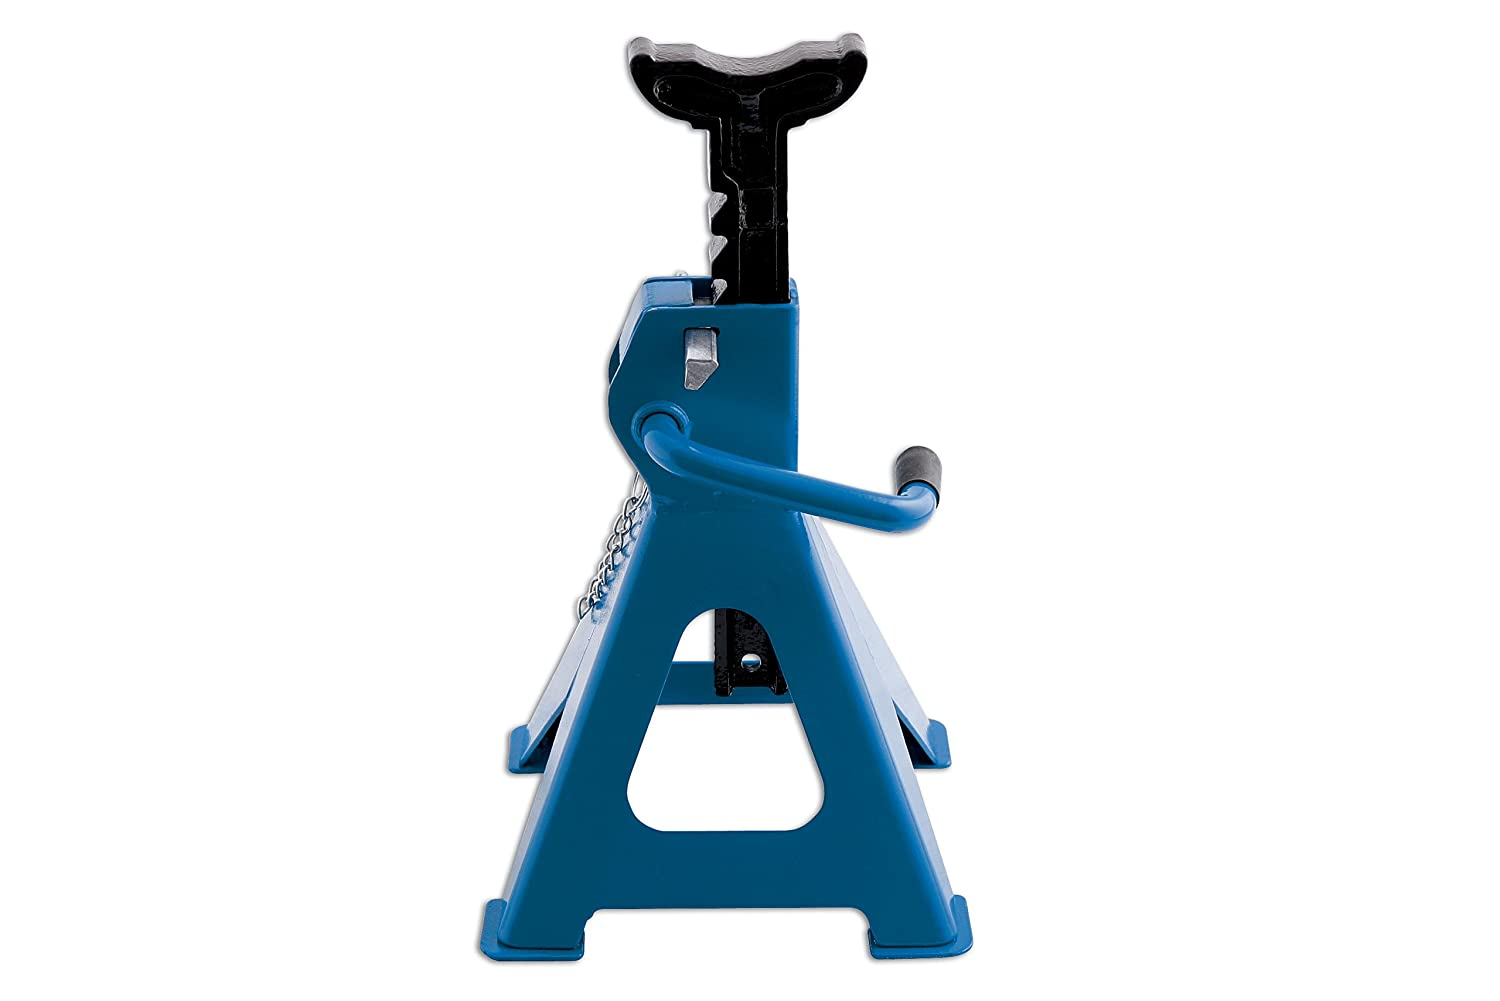 Laser 5073 2t Axle Stands The Tool Connection Ltd.